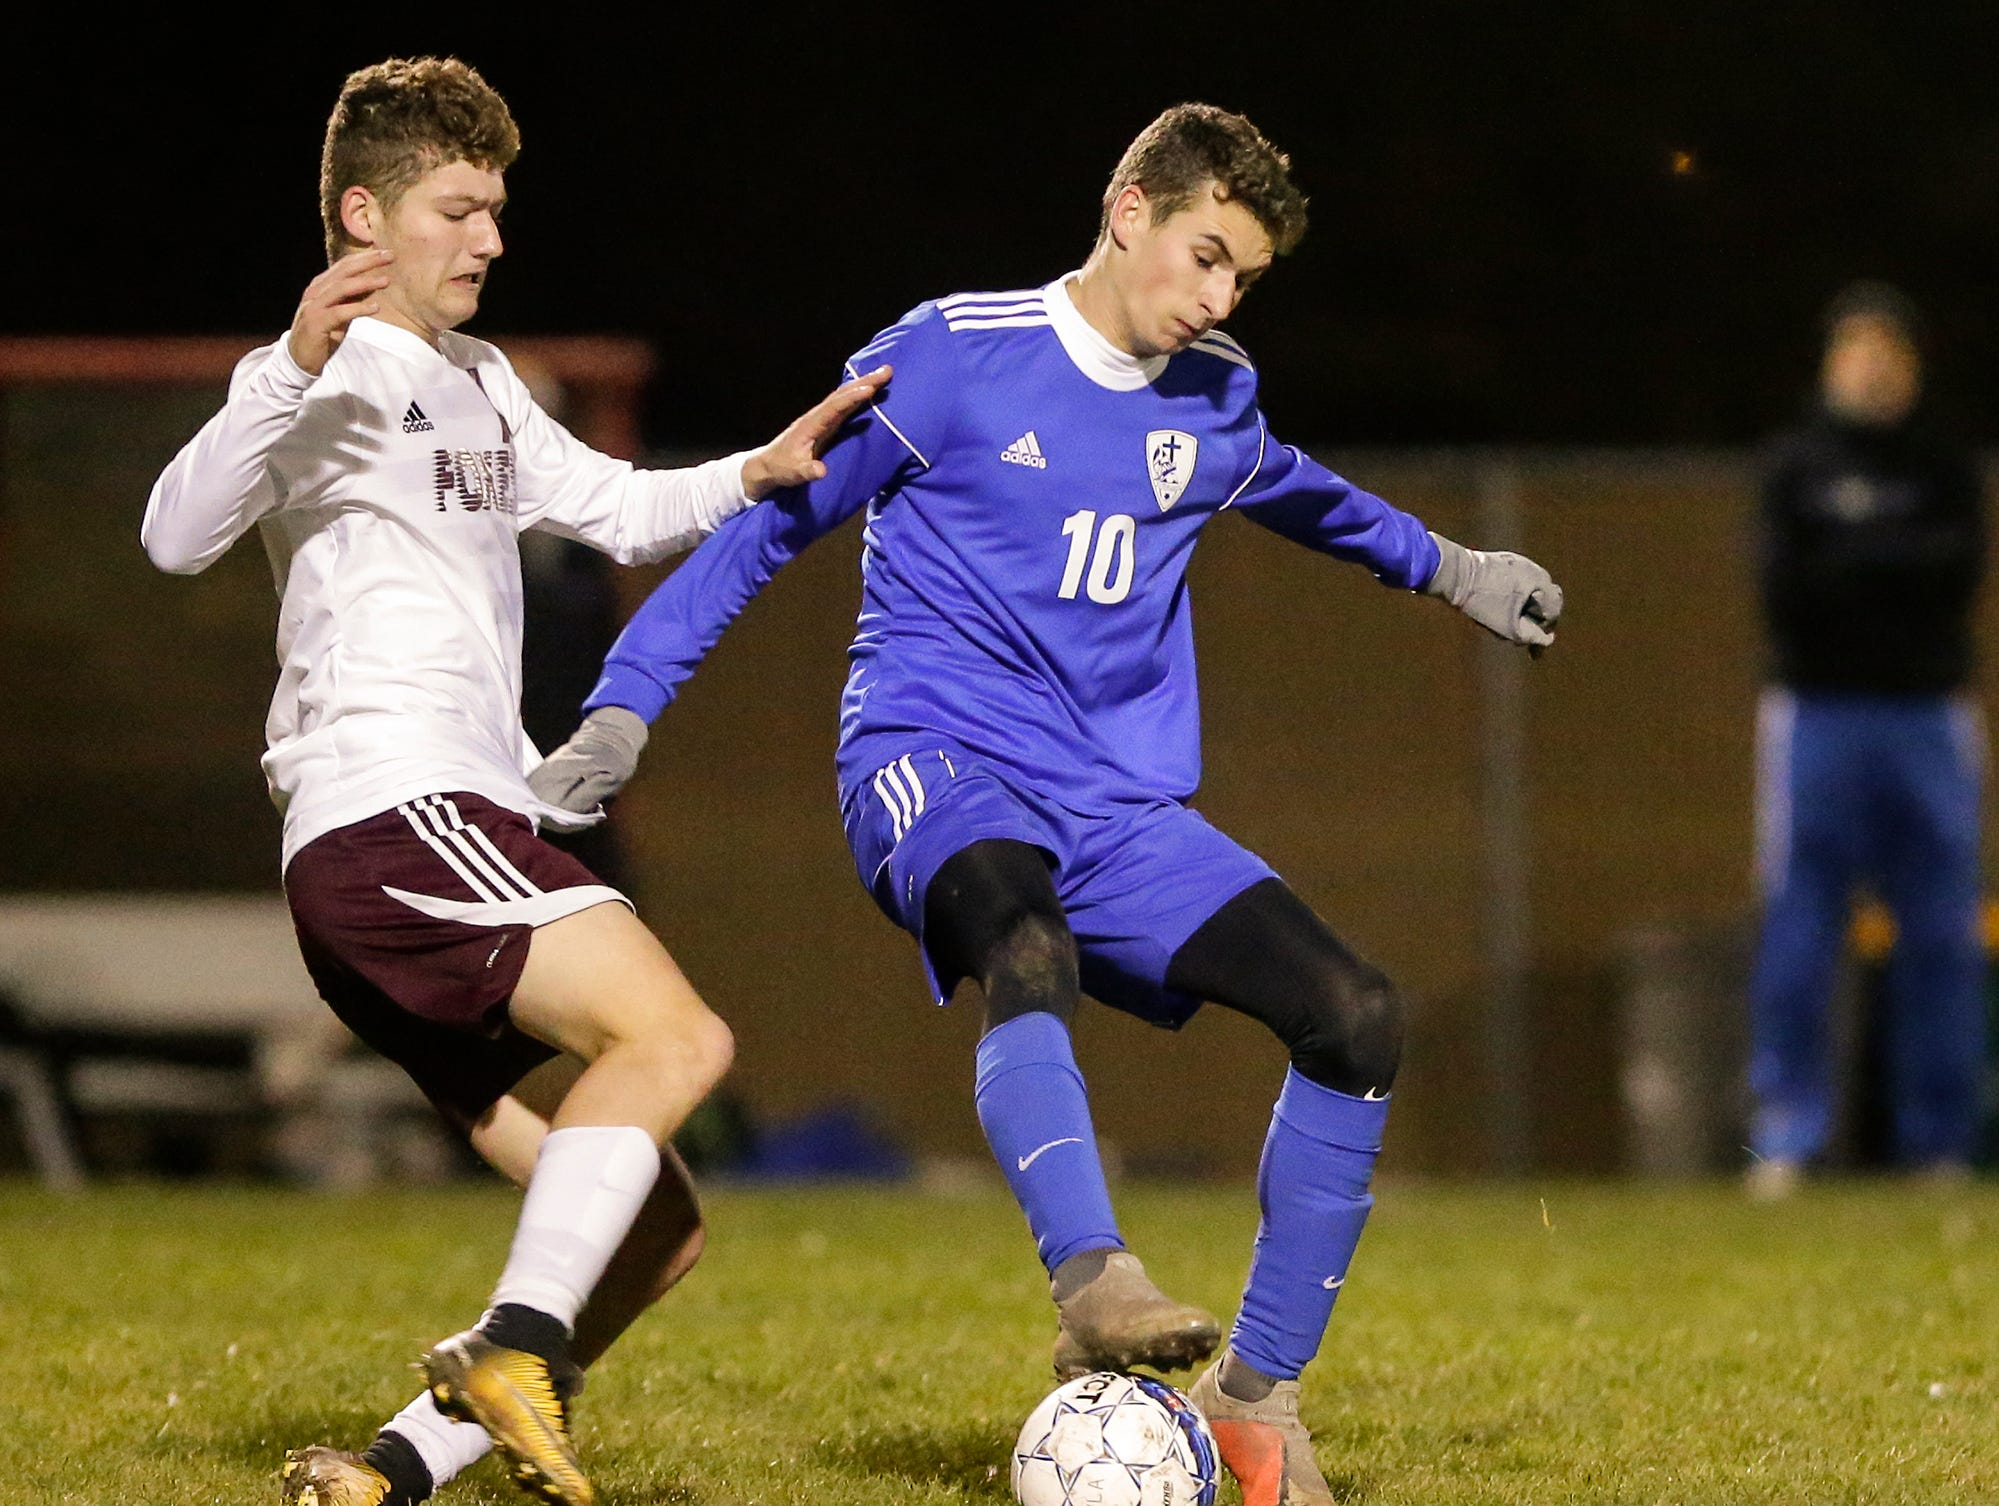 Winnebago Lutheran Academy soccer's Nathan Schmidt battles for the ball against Omro High School's Sam Smits during their WIAA regional playoff game Thursday, October 18, 2018 in Fond du Lac, Wisconsin. Doug Raflik/USA TODAY NETWORK-Wisconsin